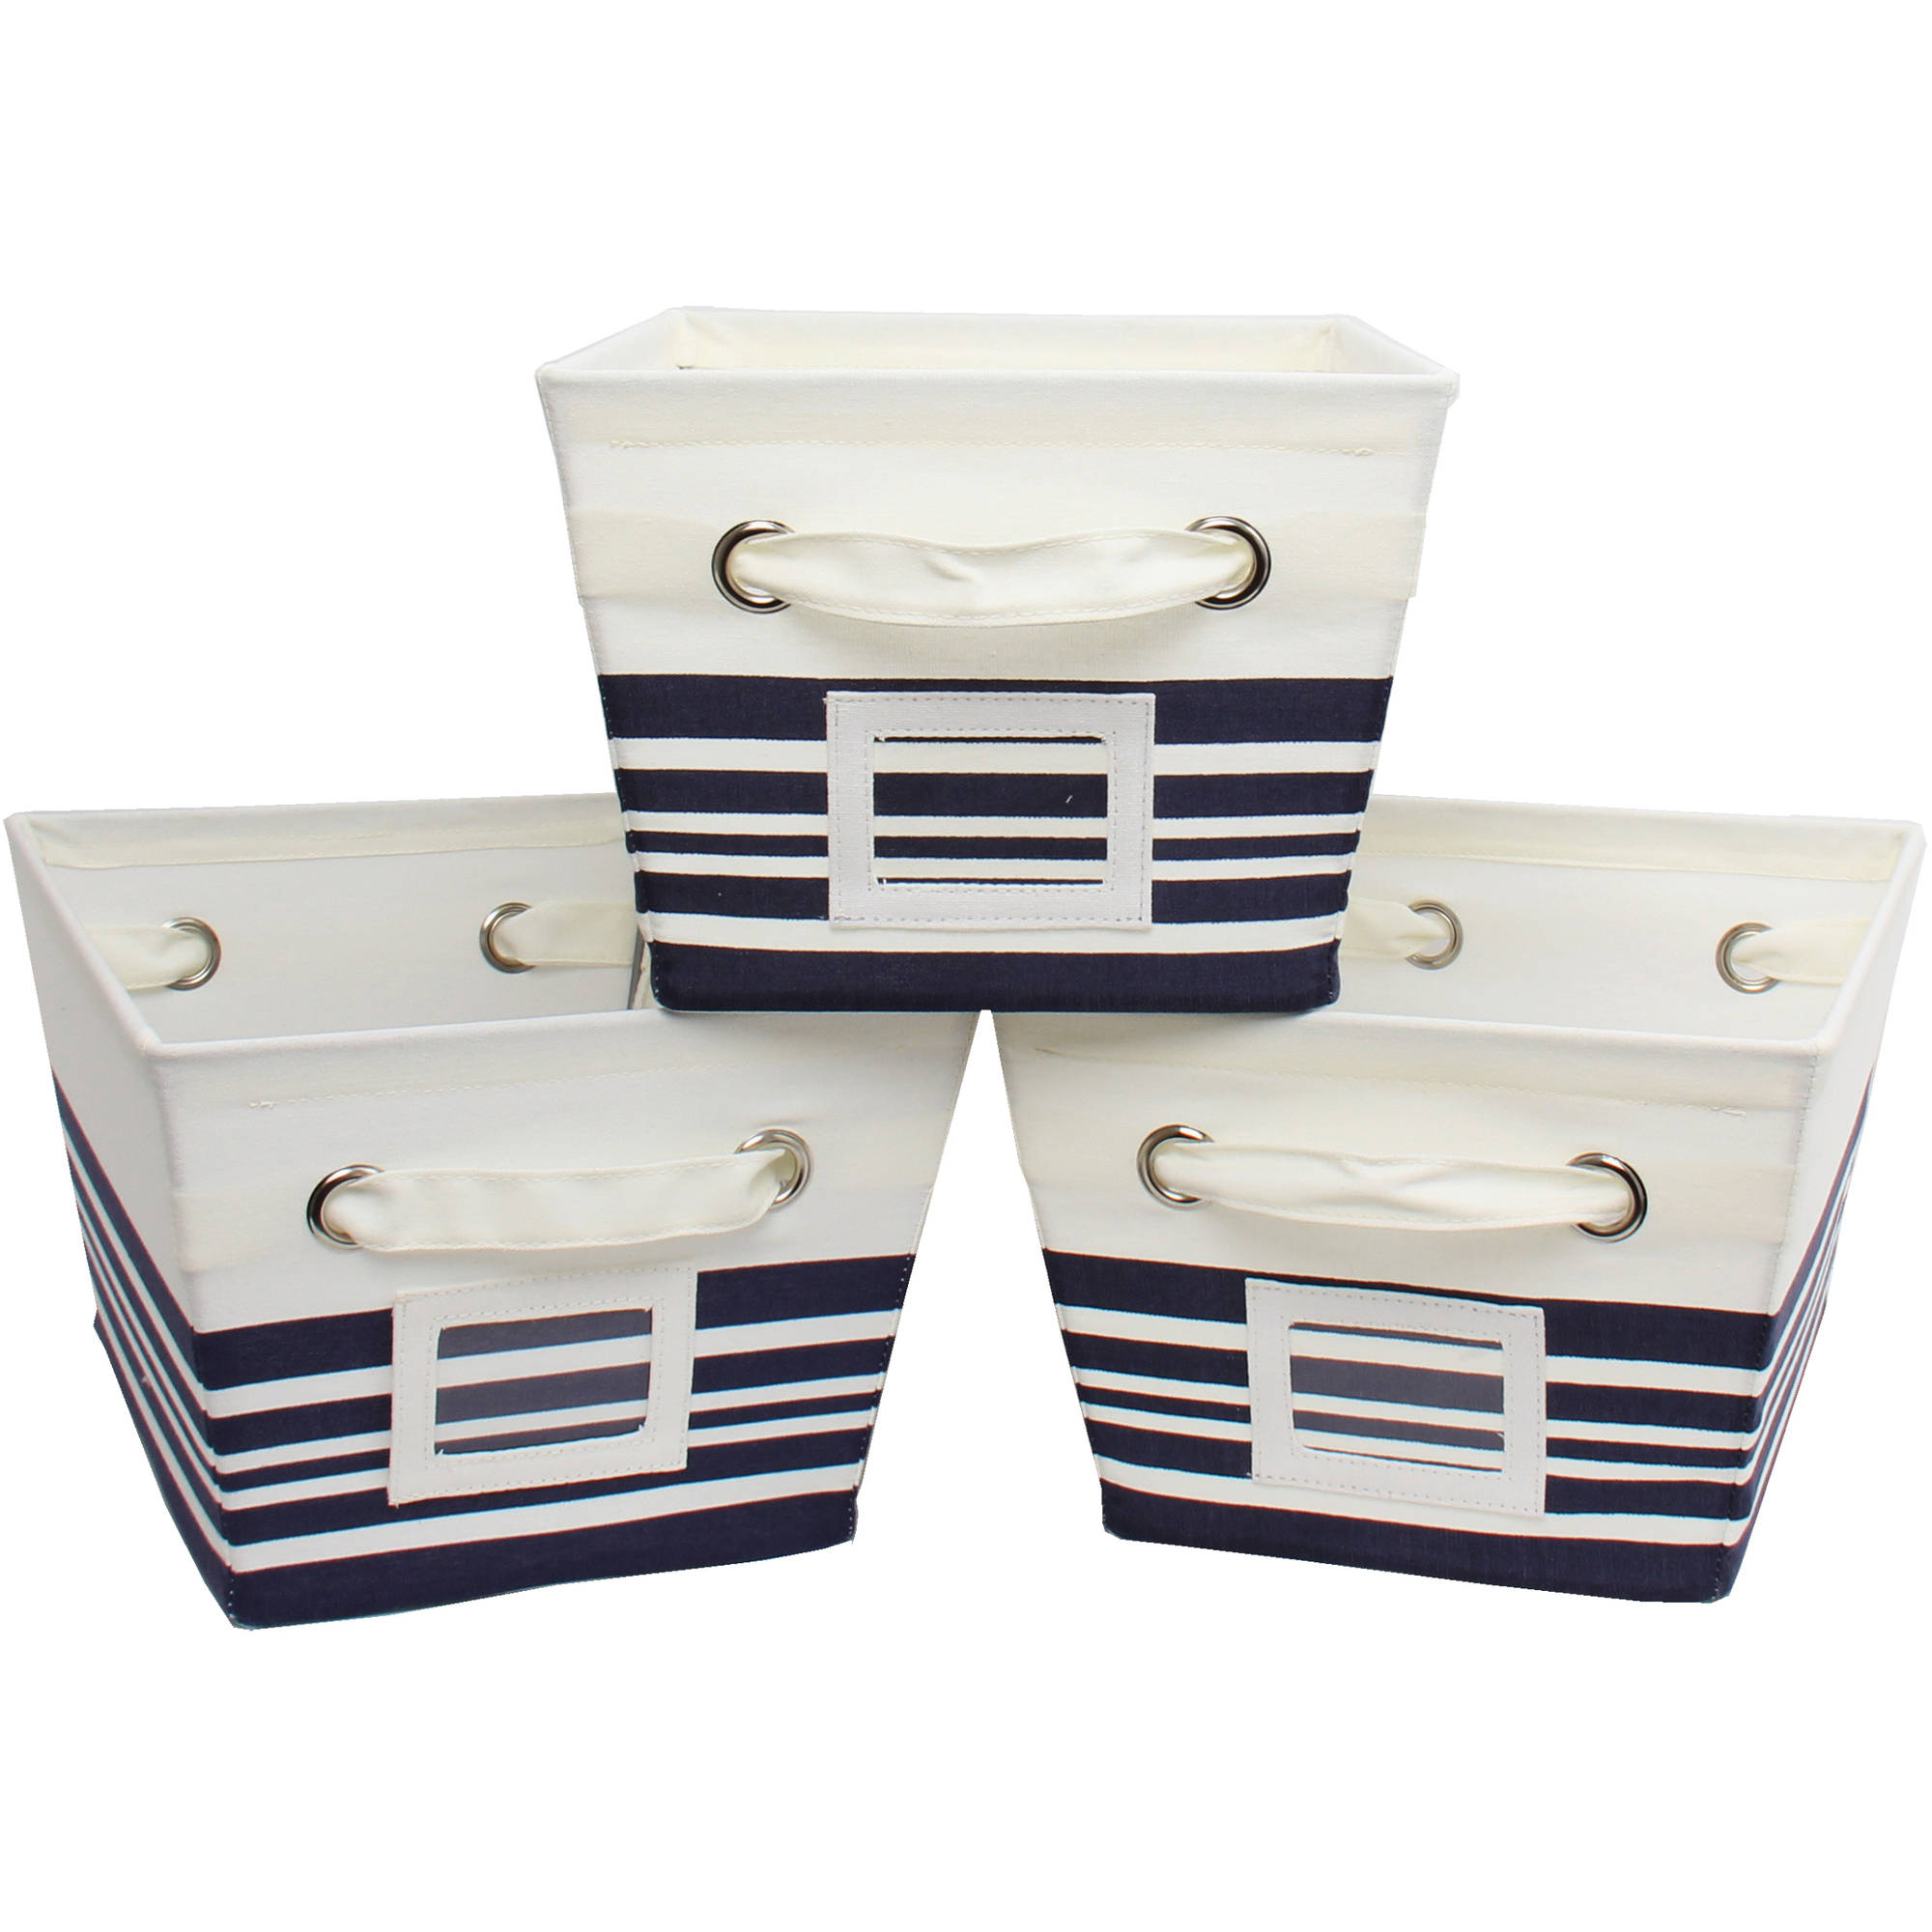 Mainstays Medium Canvas Bins, 3-Pack, Lattice Brownstone Print, Multiple Colors, Nautical Stripe